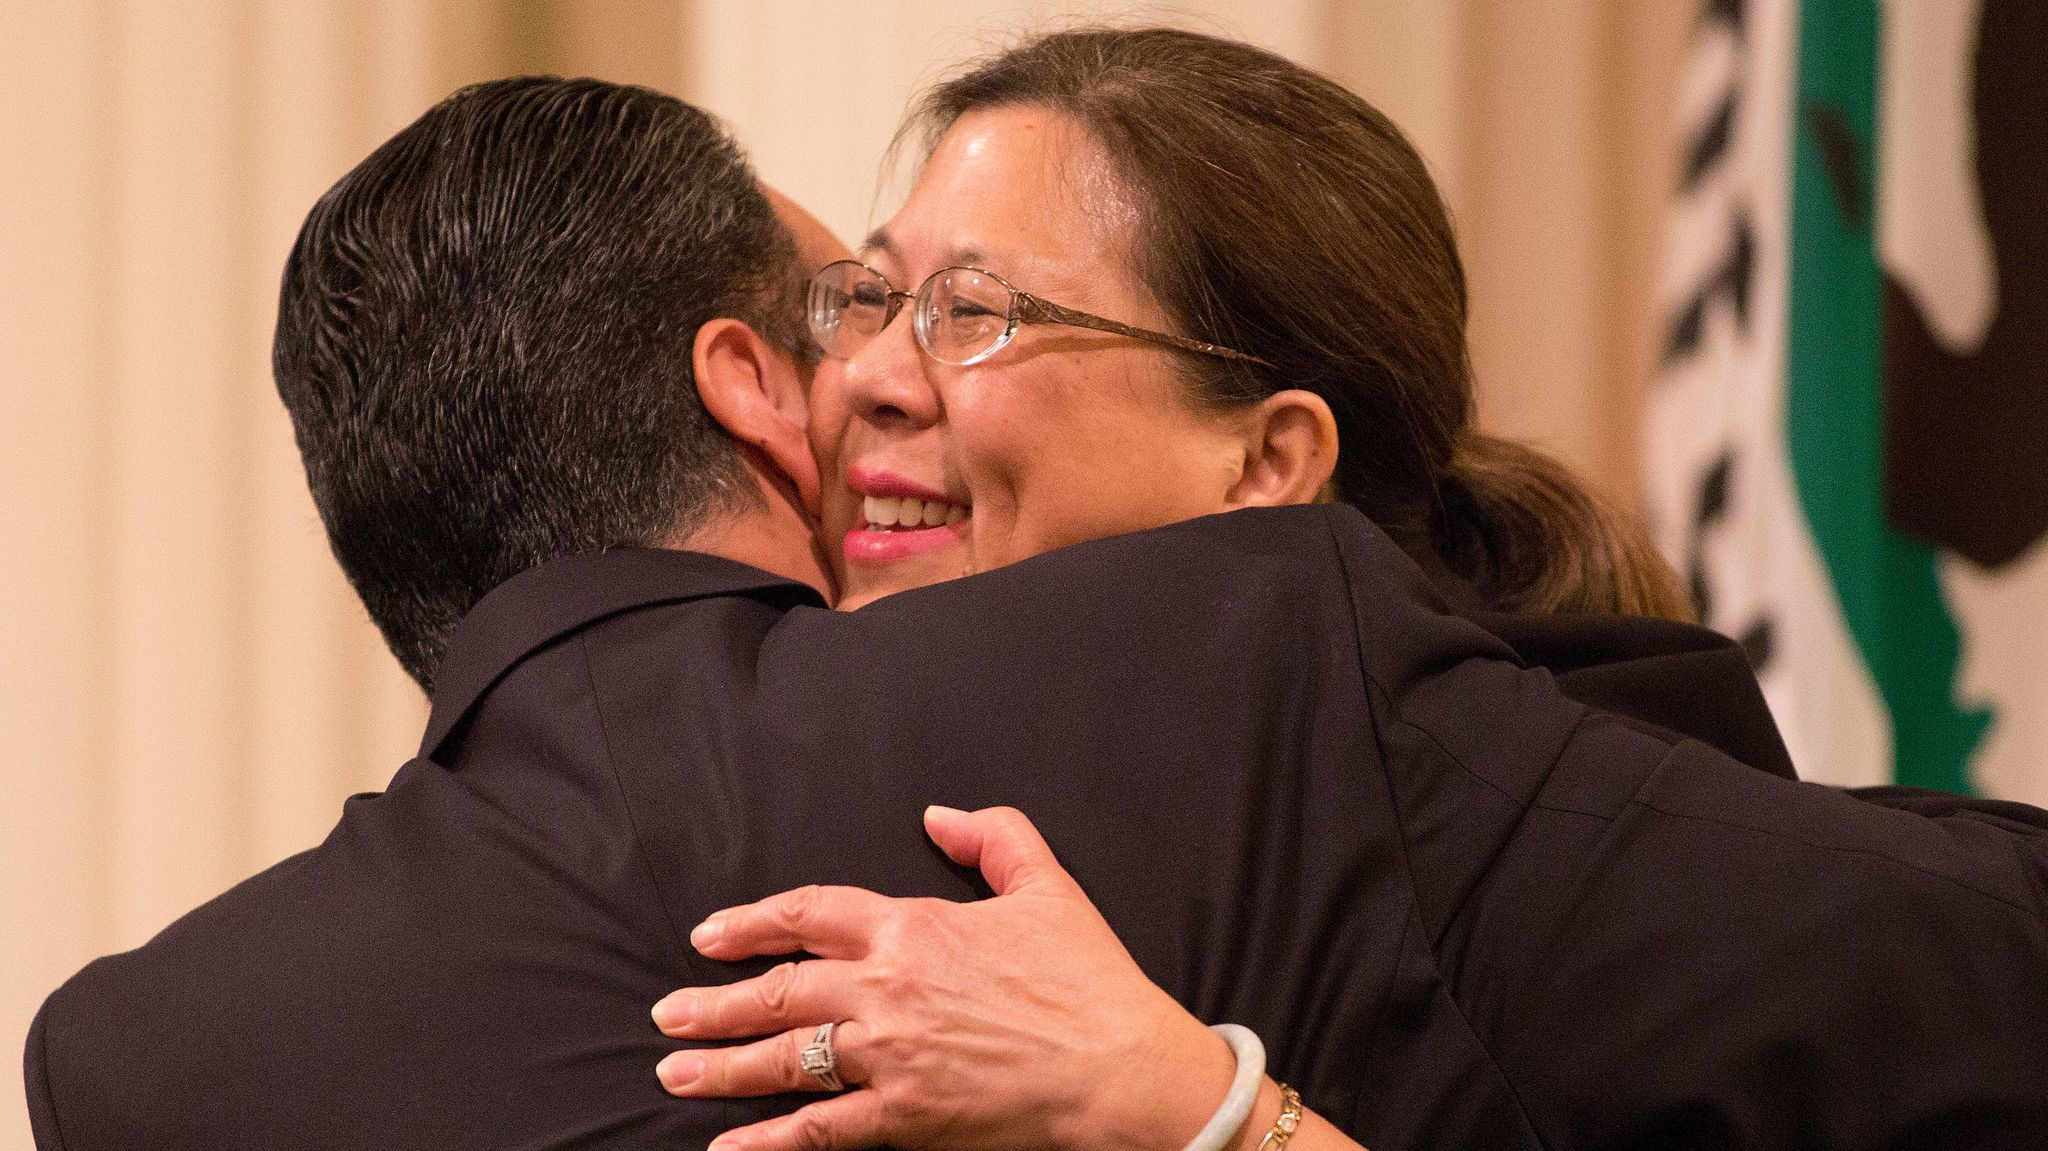 State Controller Betty Yee greets a lawmaker during a joint session of the California Legislature in 2016.